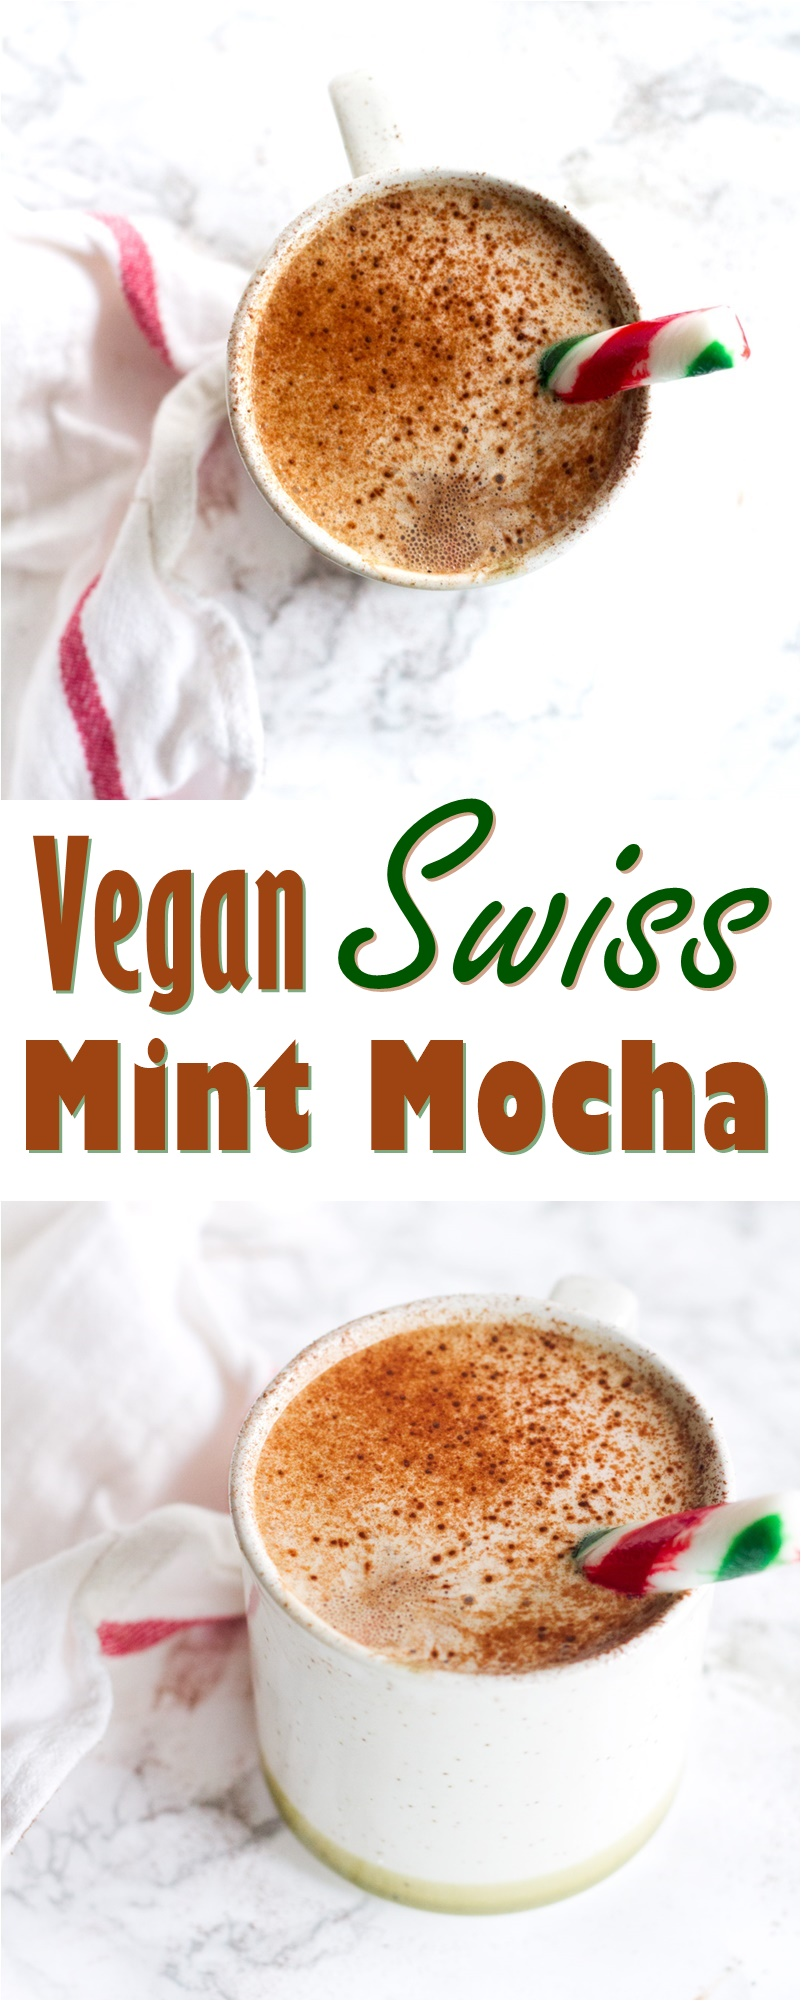 Barista-Style Dairy-free Swiss Mint Mocha Recipe (easy, vegan and delicious)